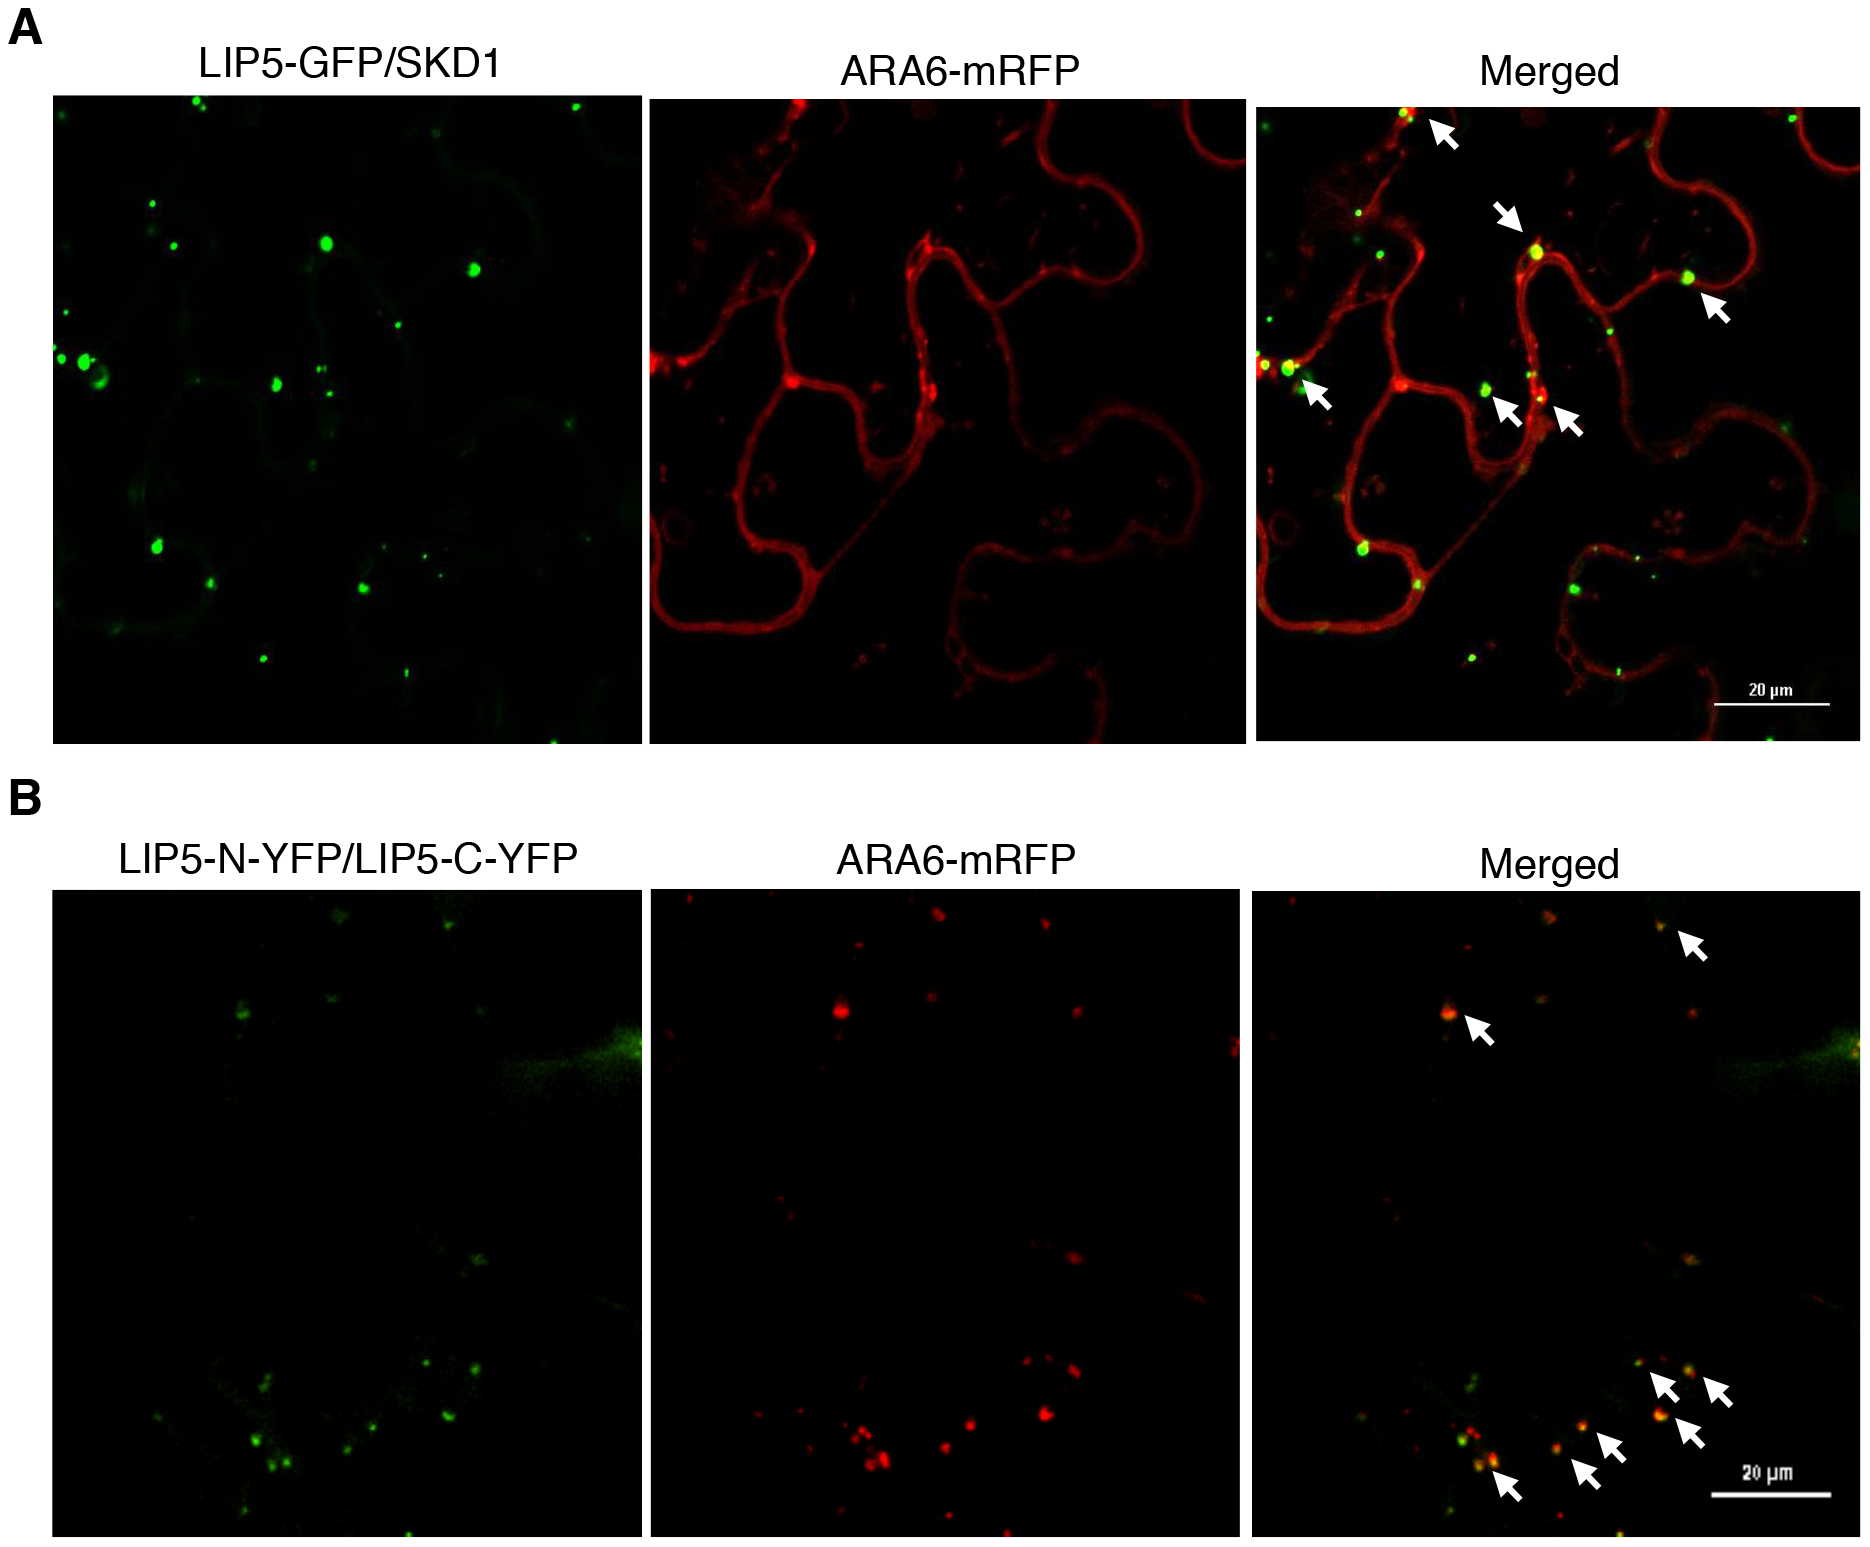 Subcellular colocalization of LIP5 with ARA6-mRFP fusion protein in <i>N. benthamiana</i>.